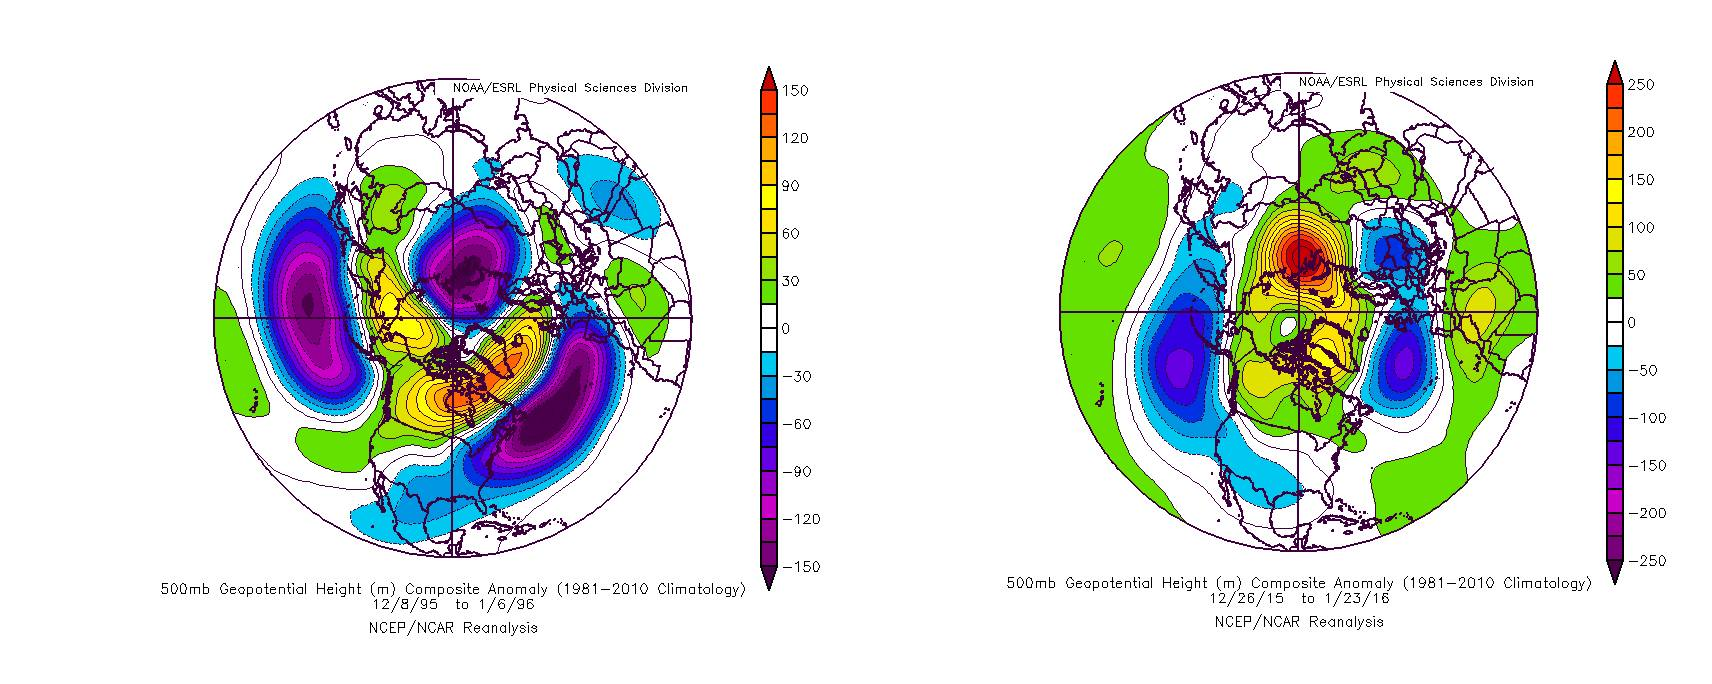 The 500mb pattern prior to the Blizzard of 1996 and the Blizzard of 2016.